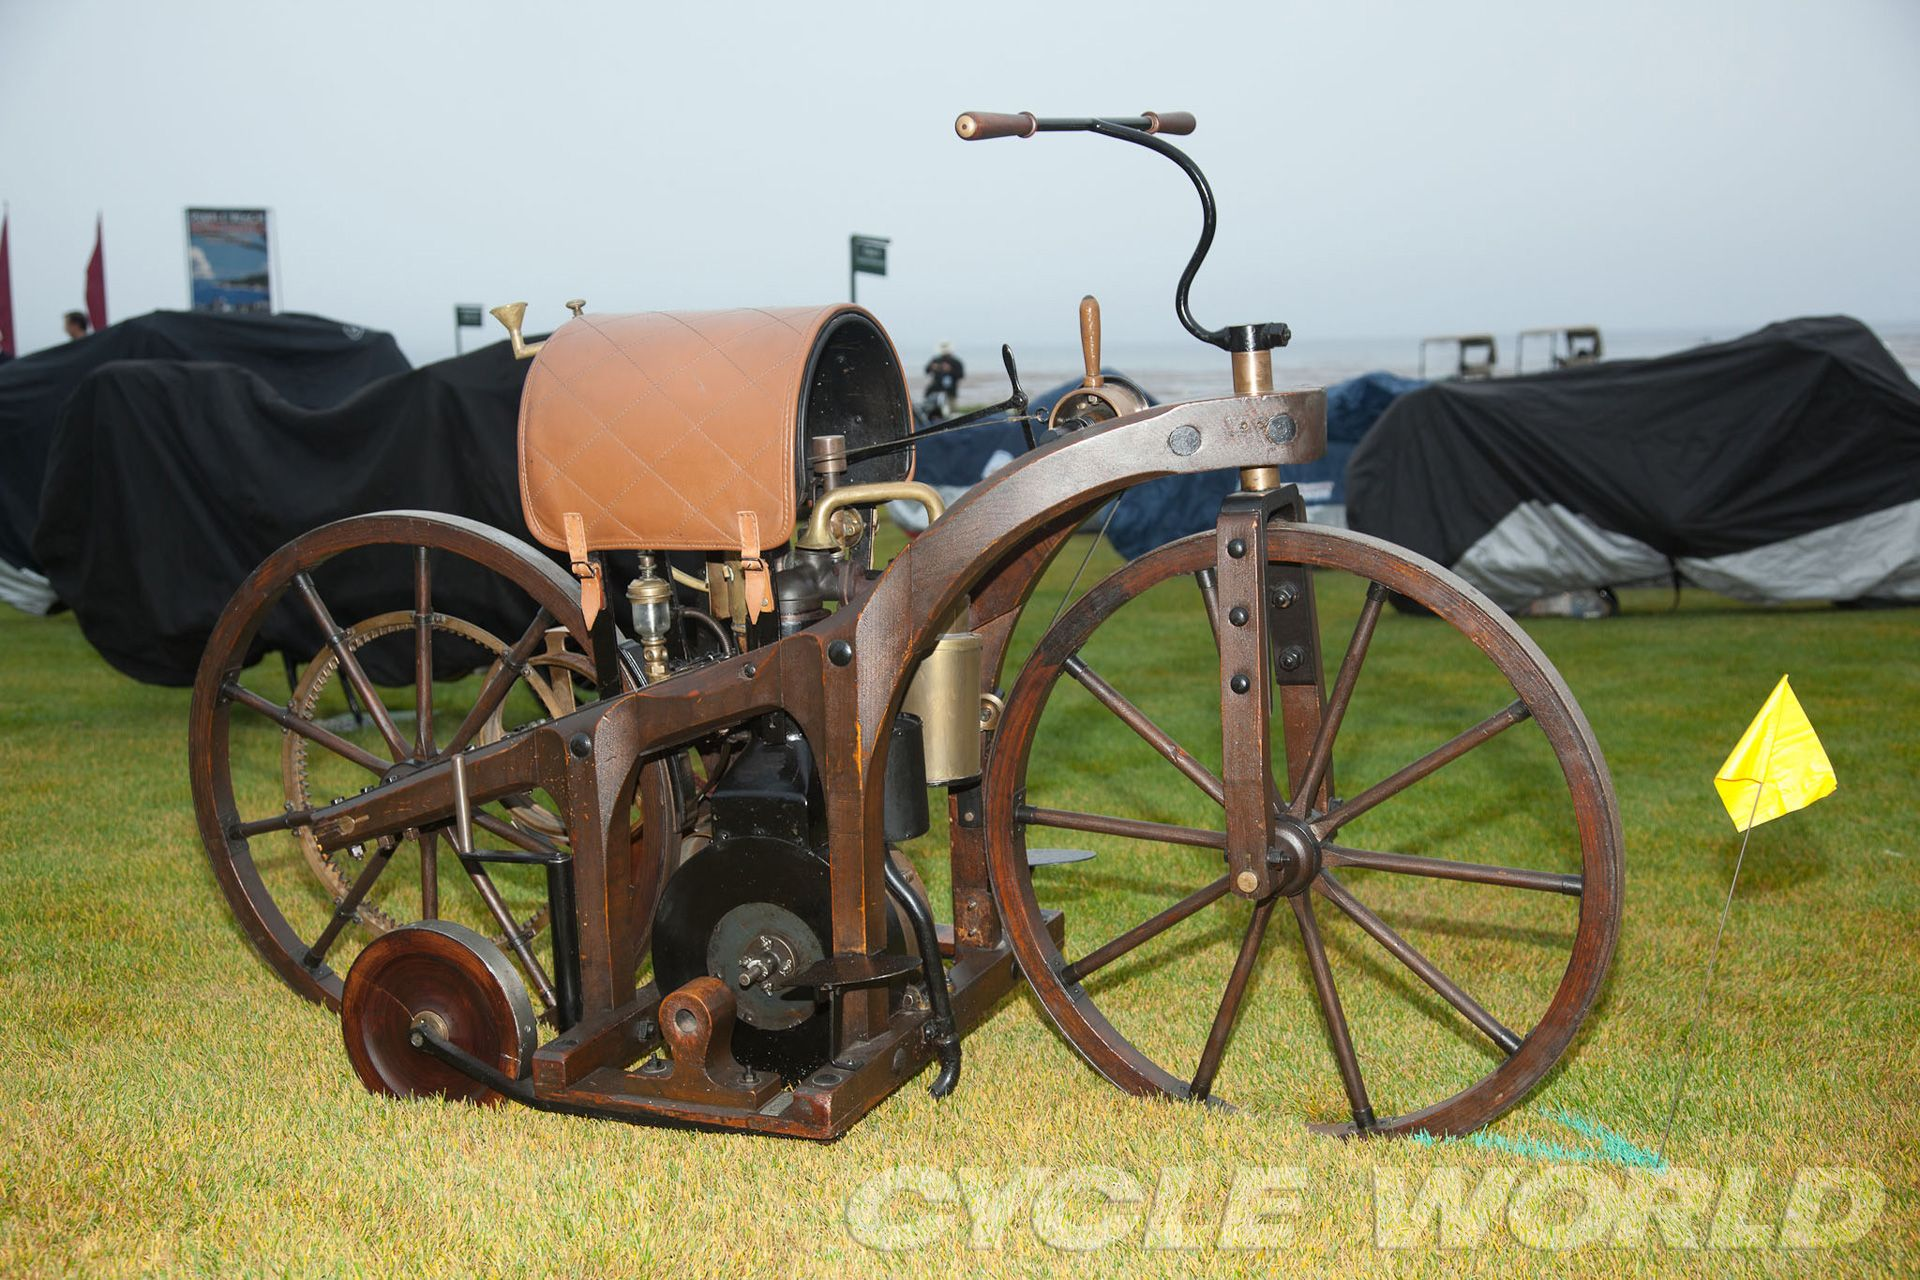 Gottlieb Daimler And Wilhelm Maybach Built The First Motorcycle